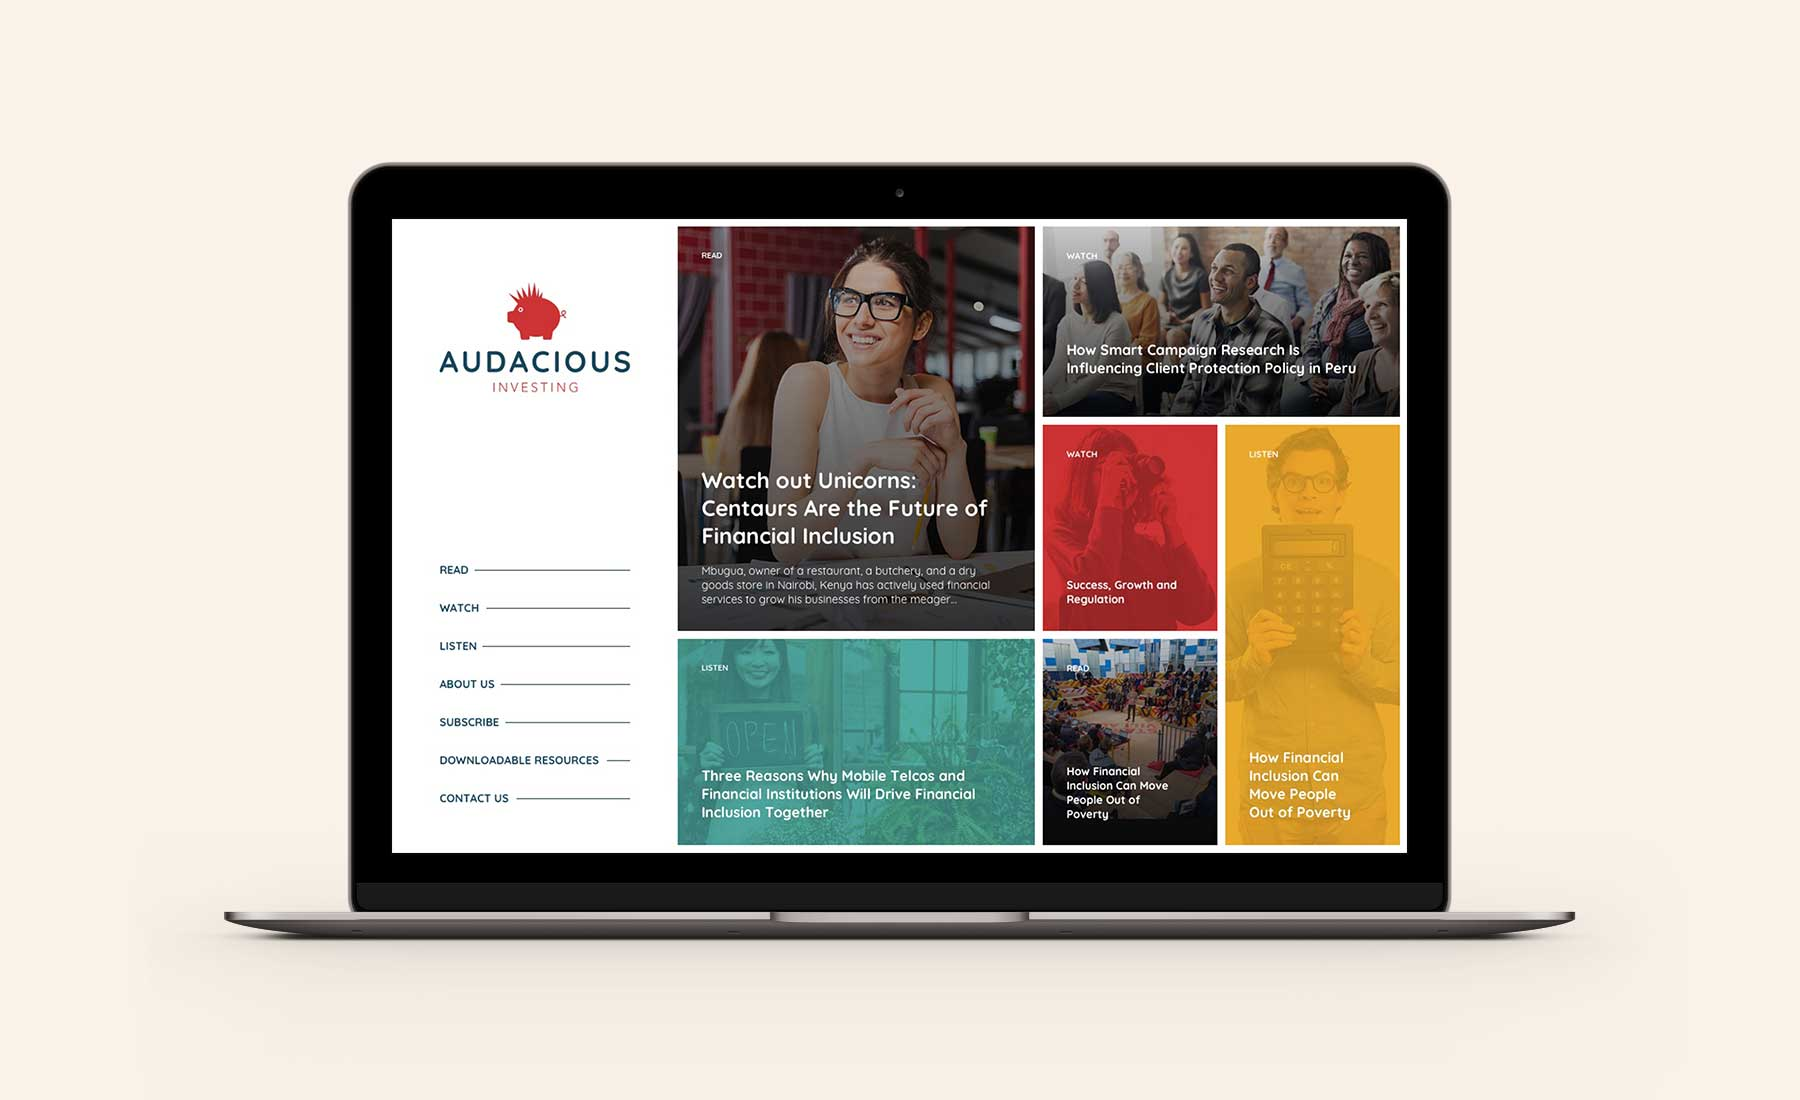 Audacious Investing homepage desktop design on Macbook